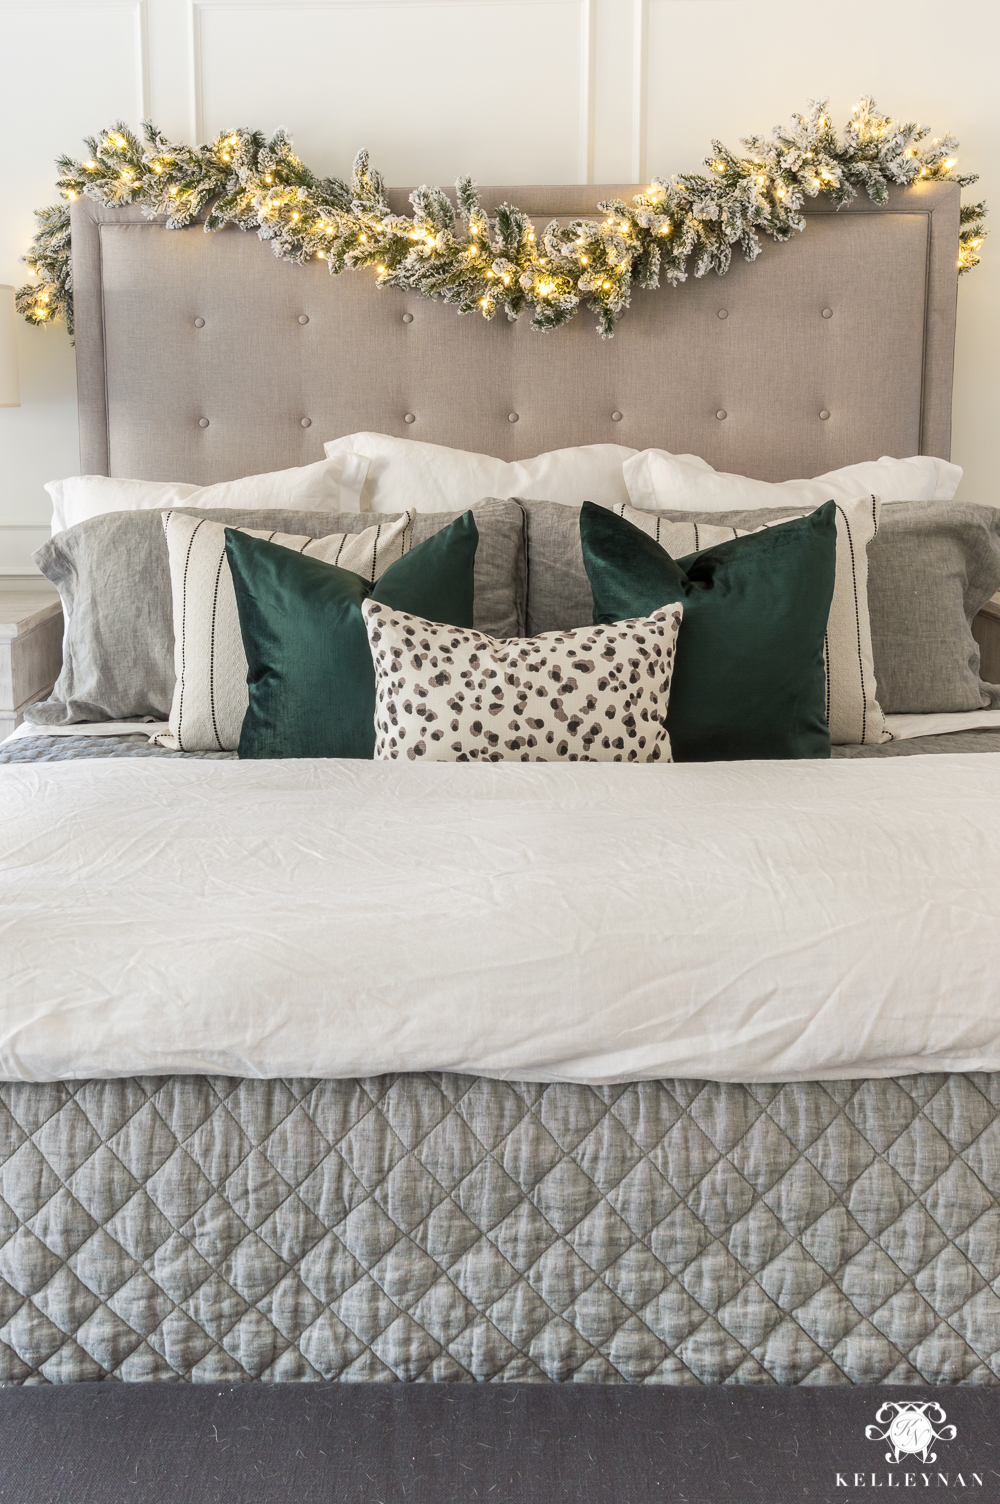 Snow leopard and green Christmas color scheme for Christmas bedding